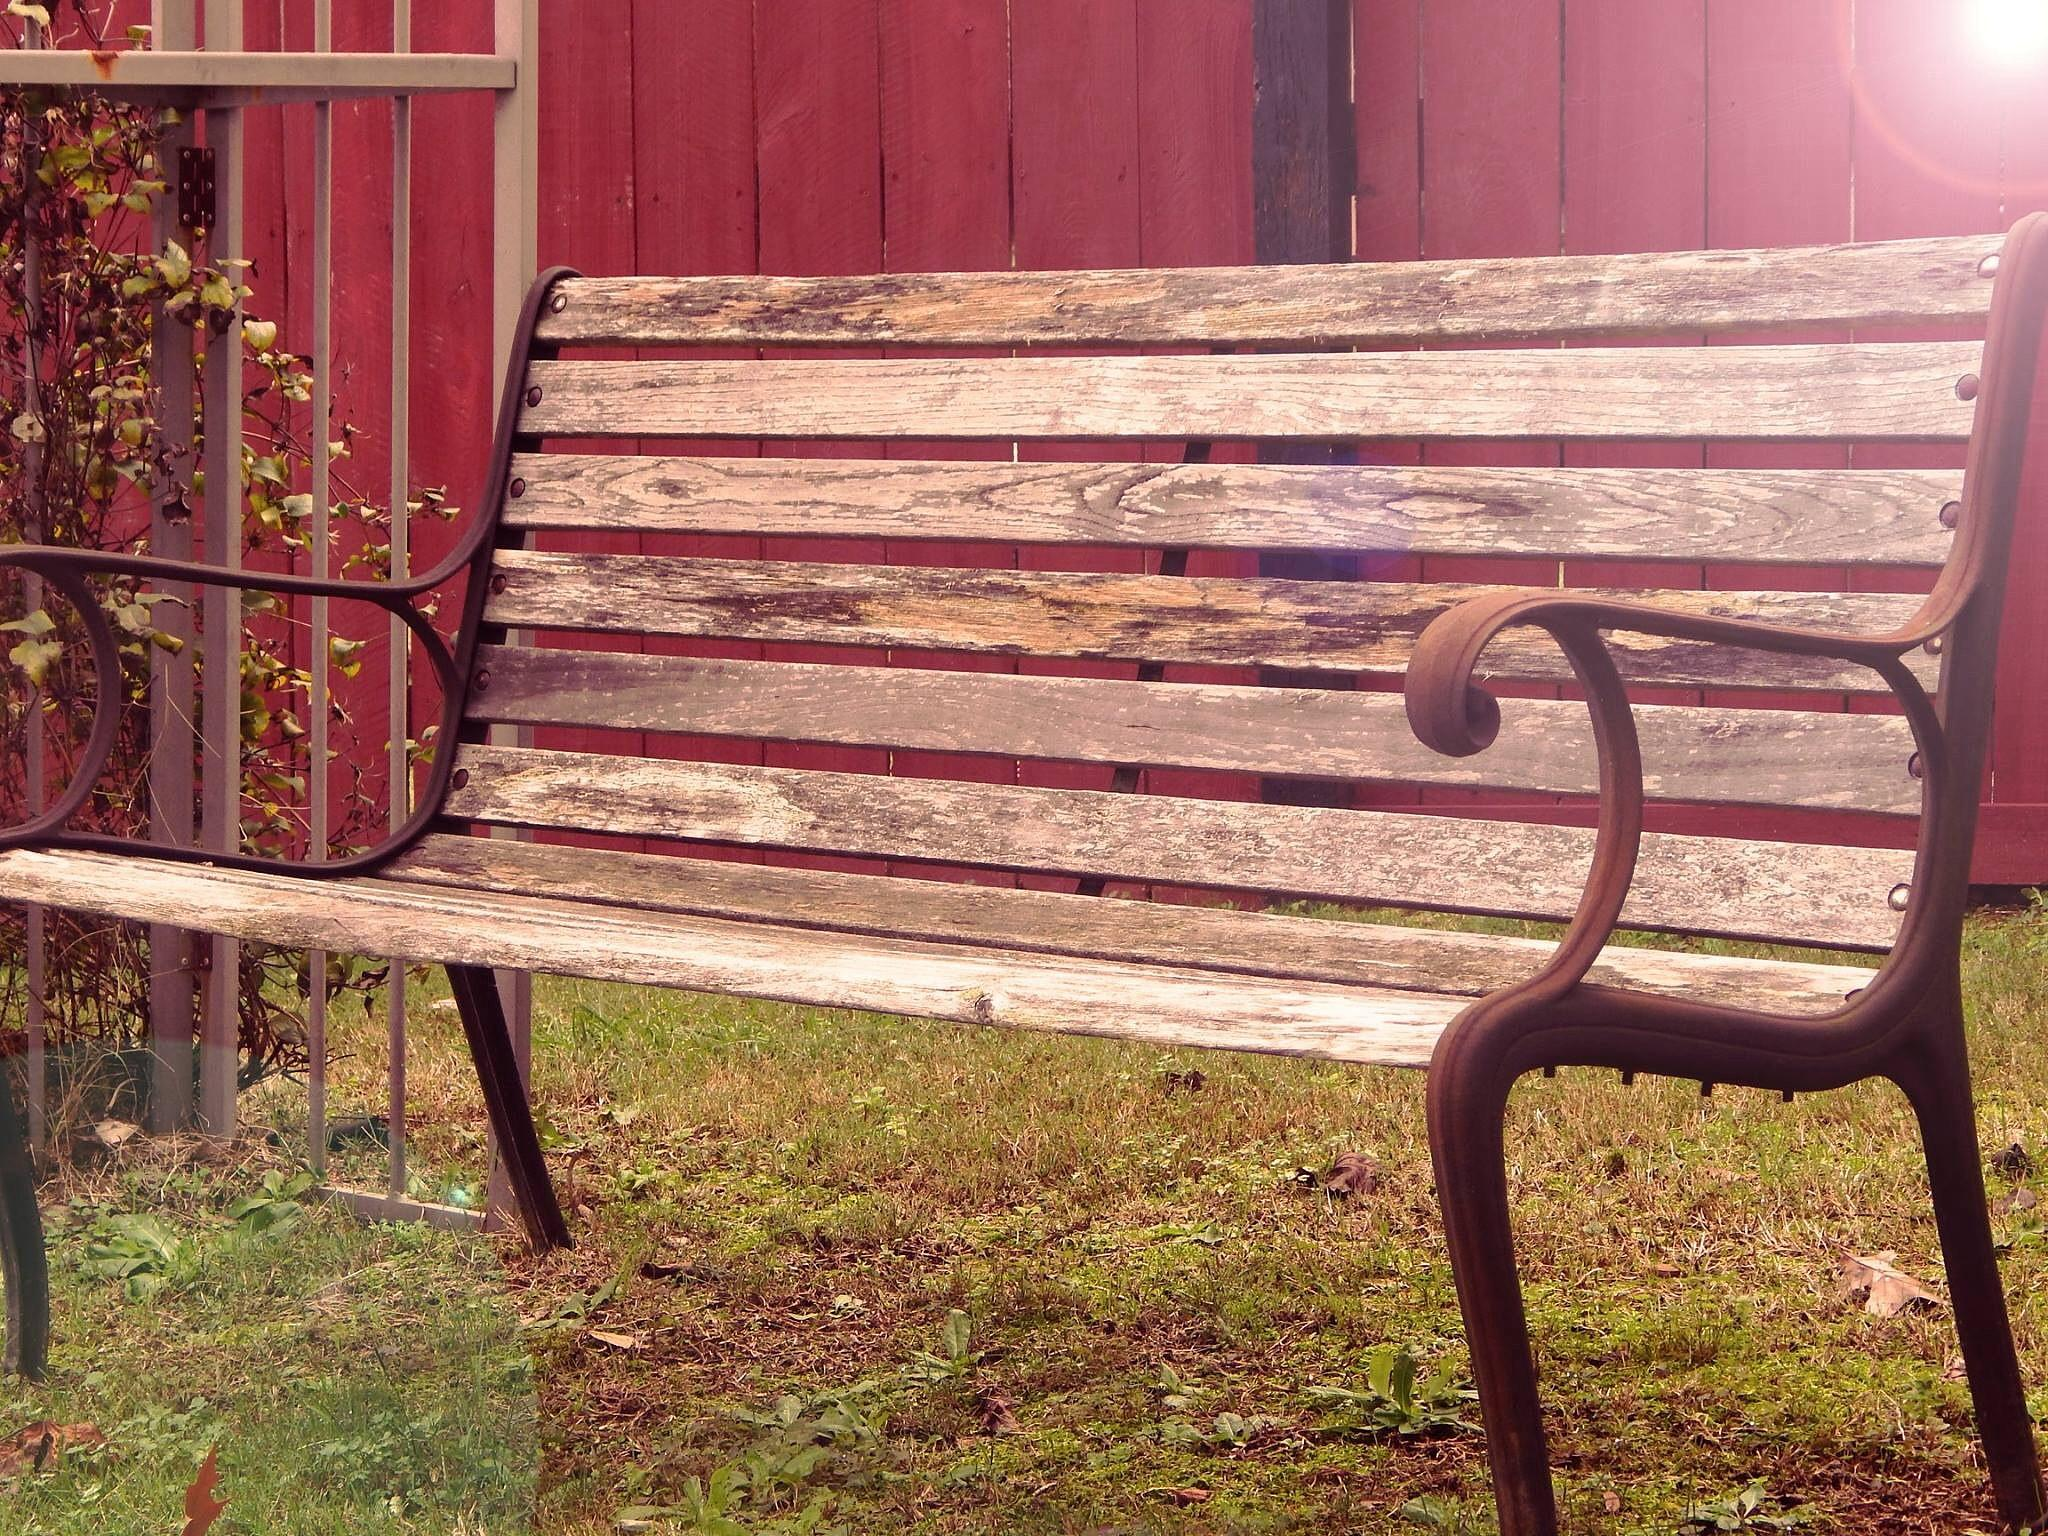 Wooden bench by shannen.kocher